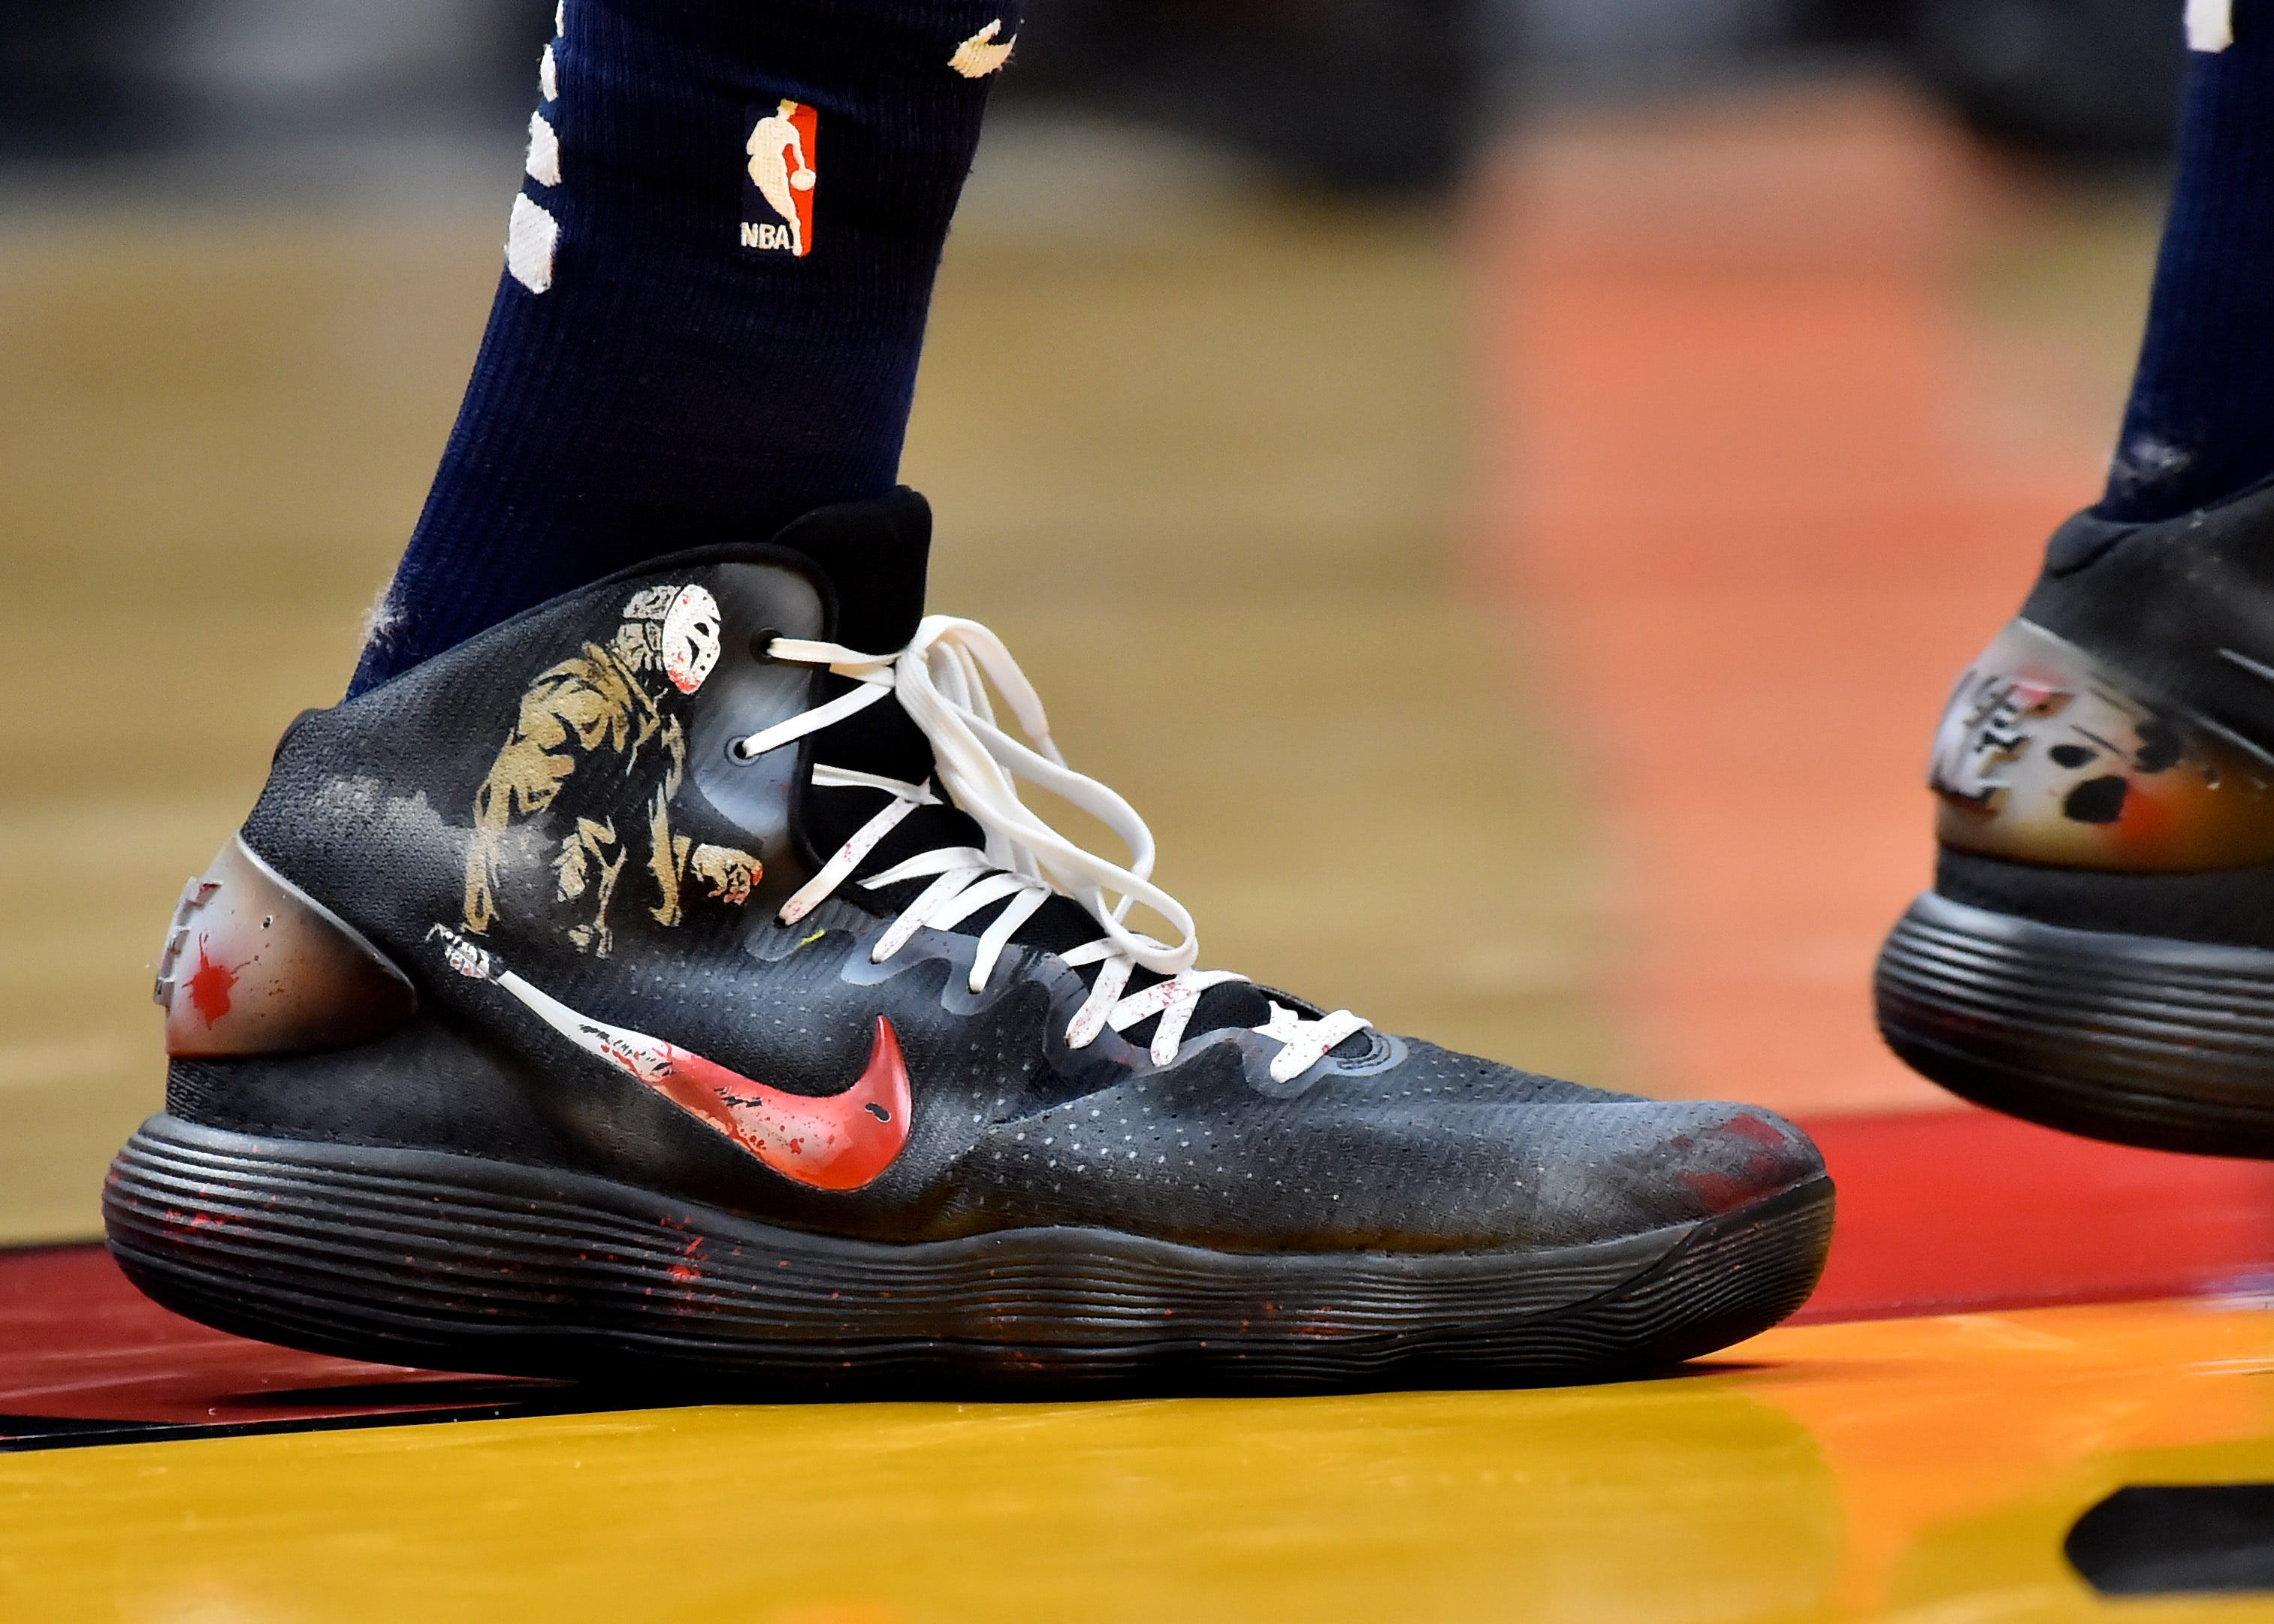 designers who transform players' shoes